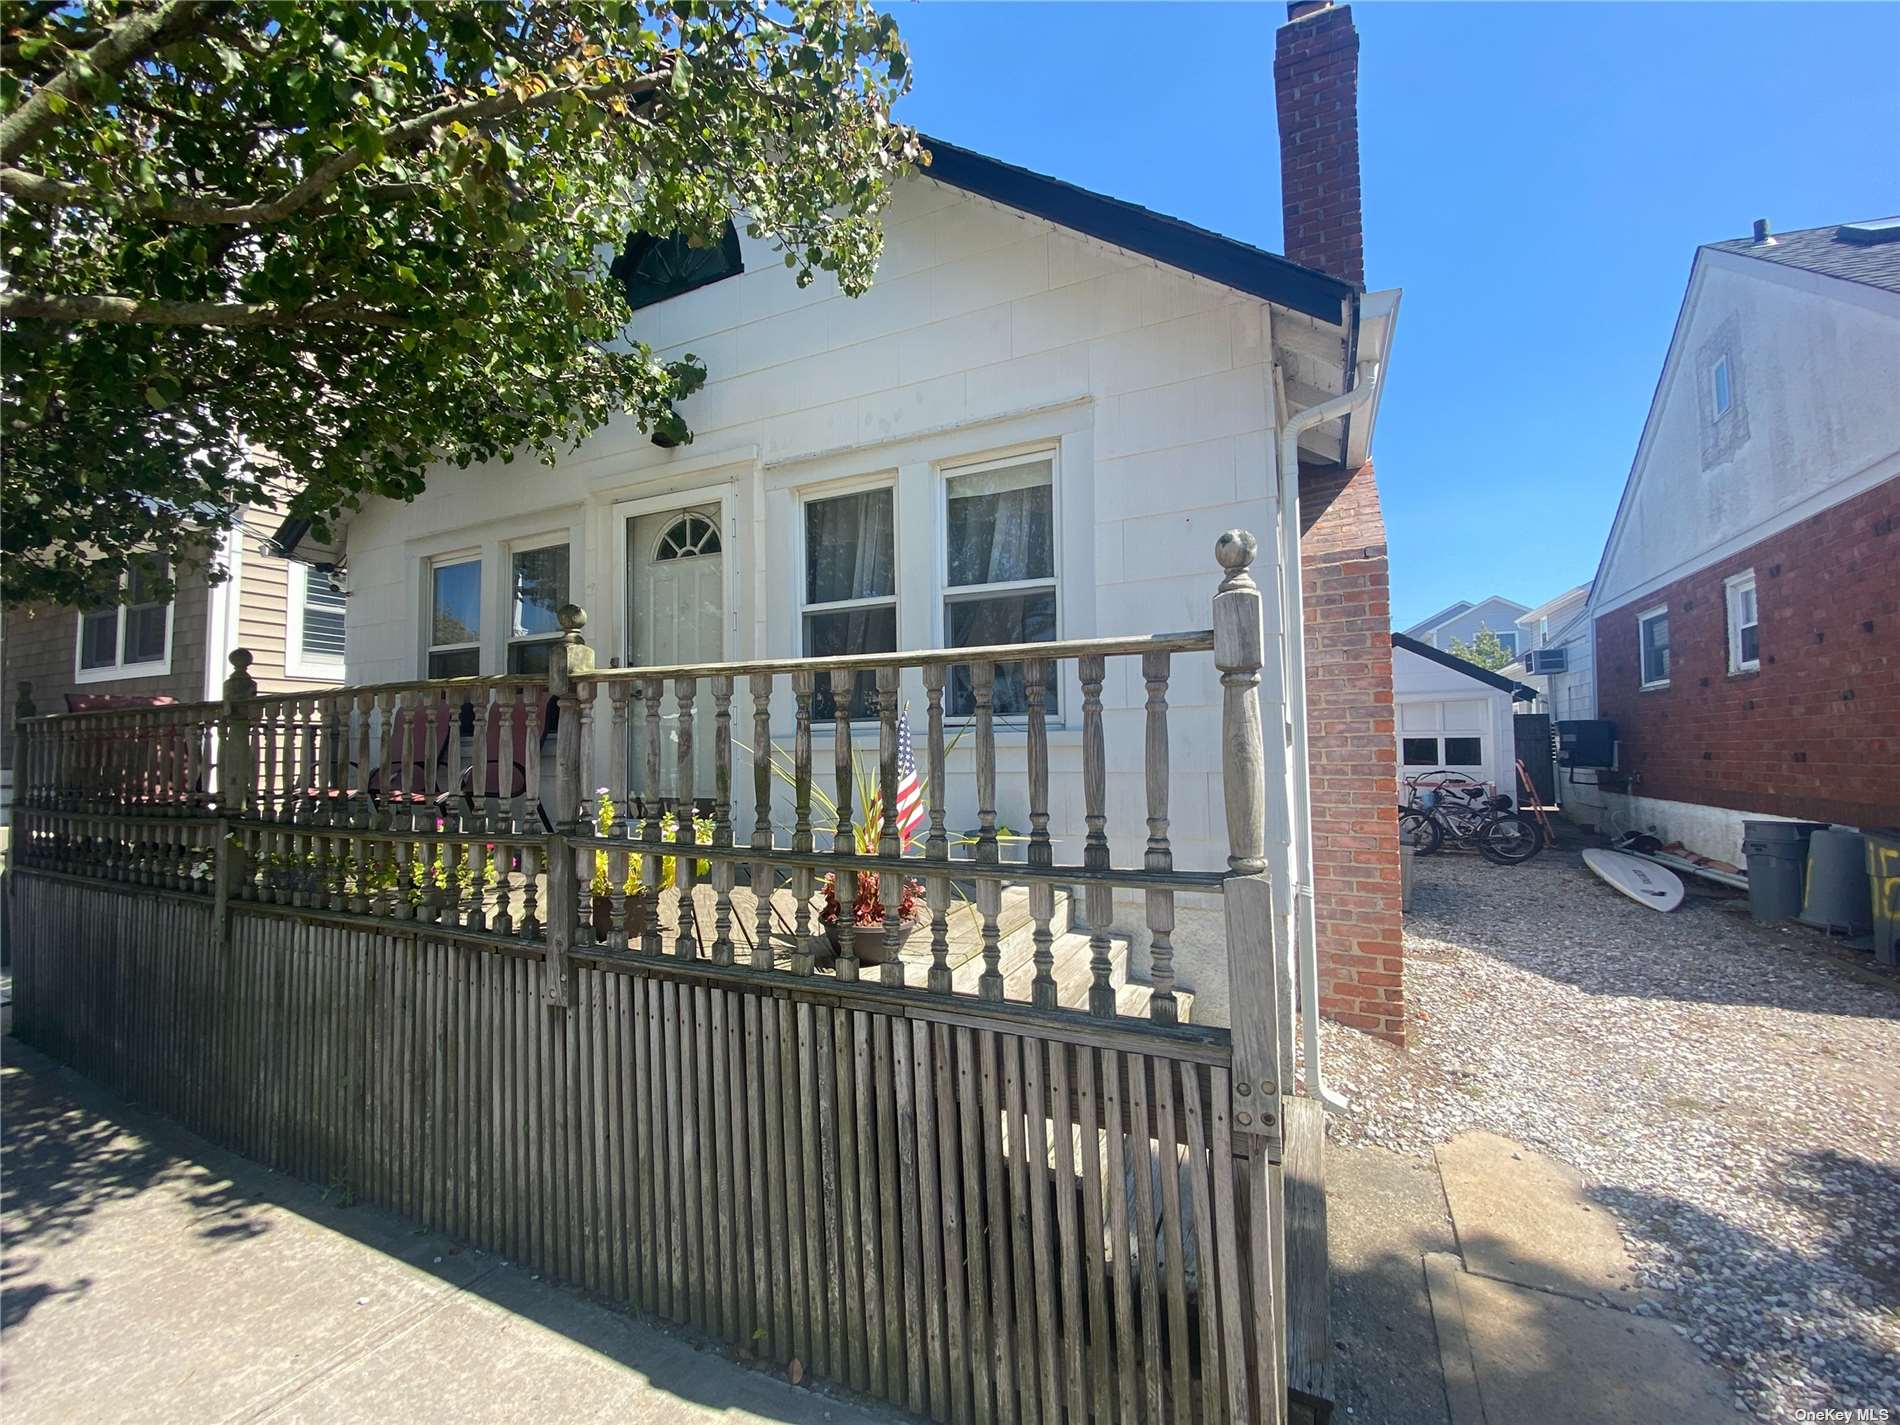 68 Parkside Drive, Point Lookout, New York11569 | Residential For Sale